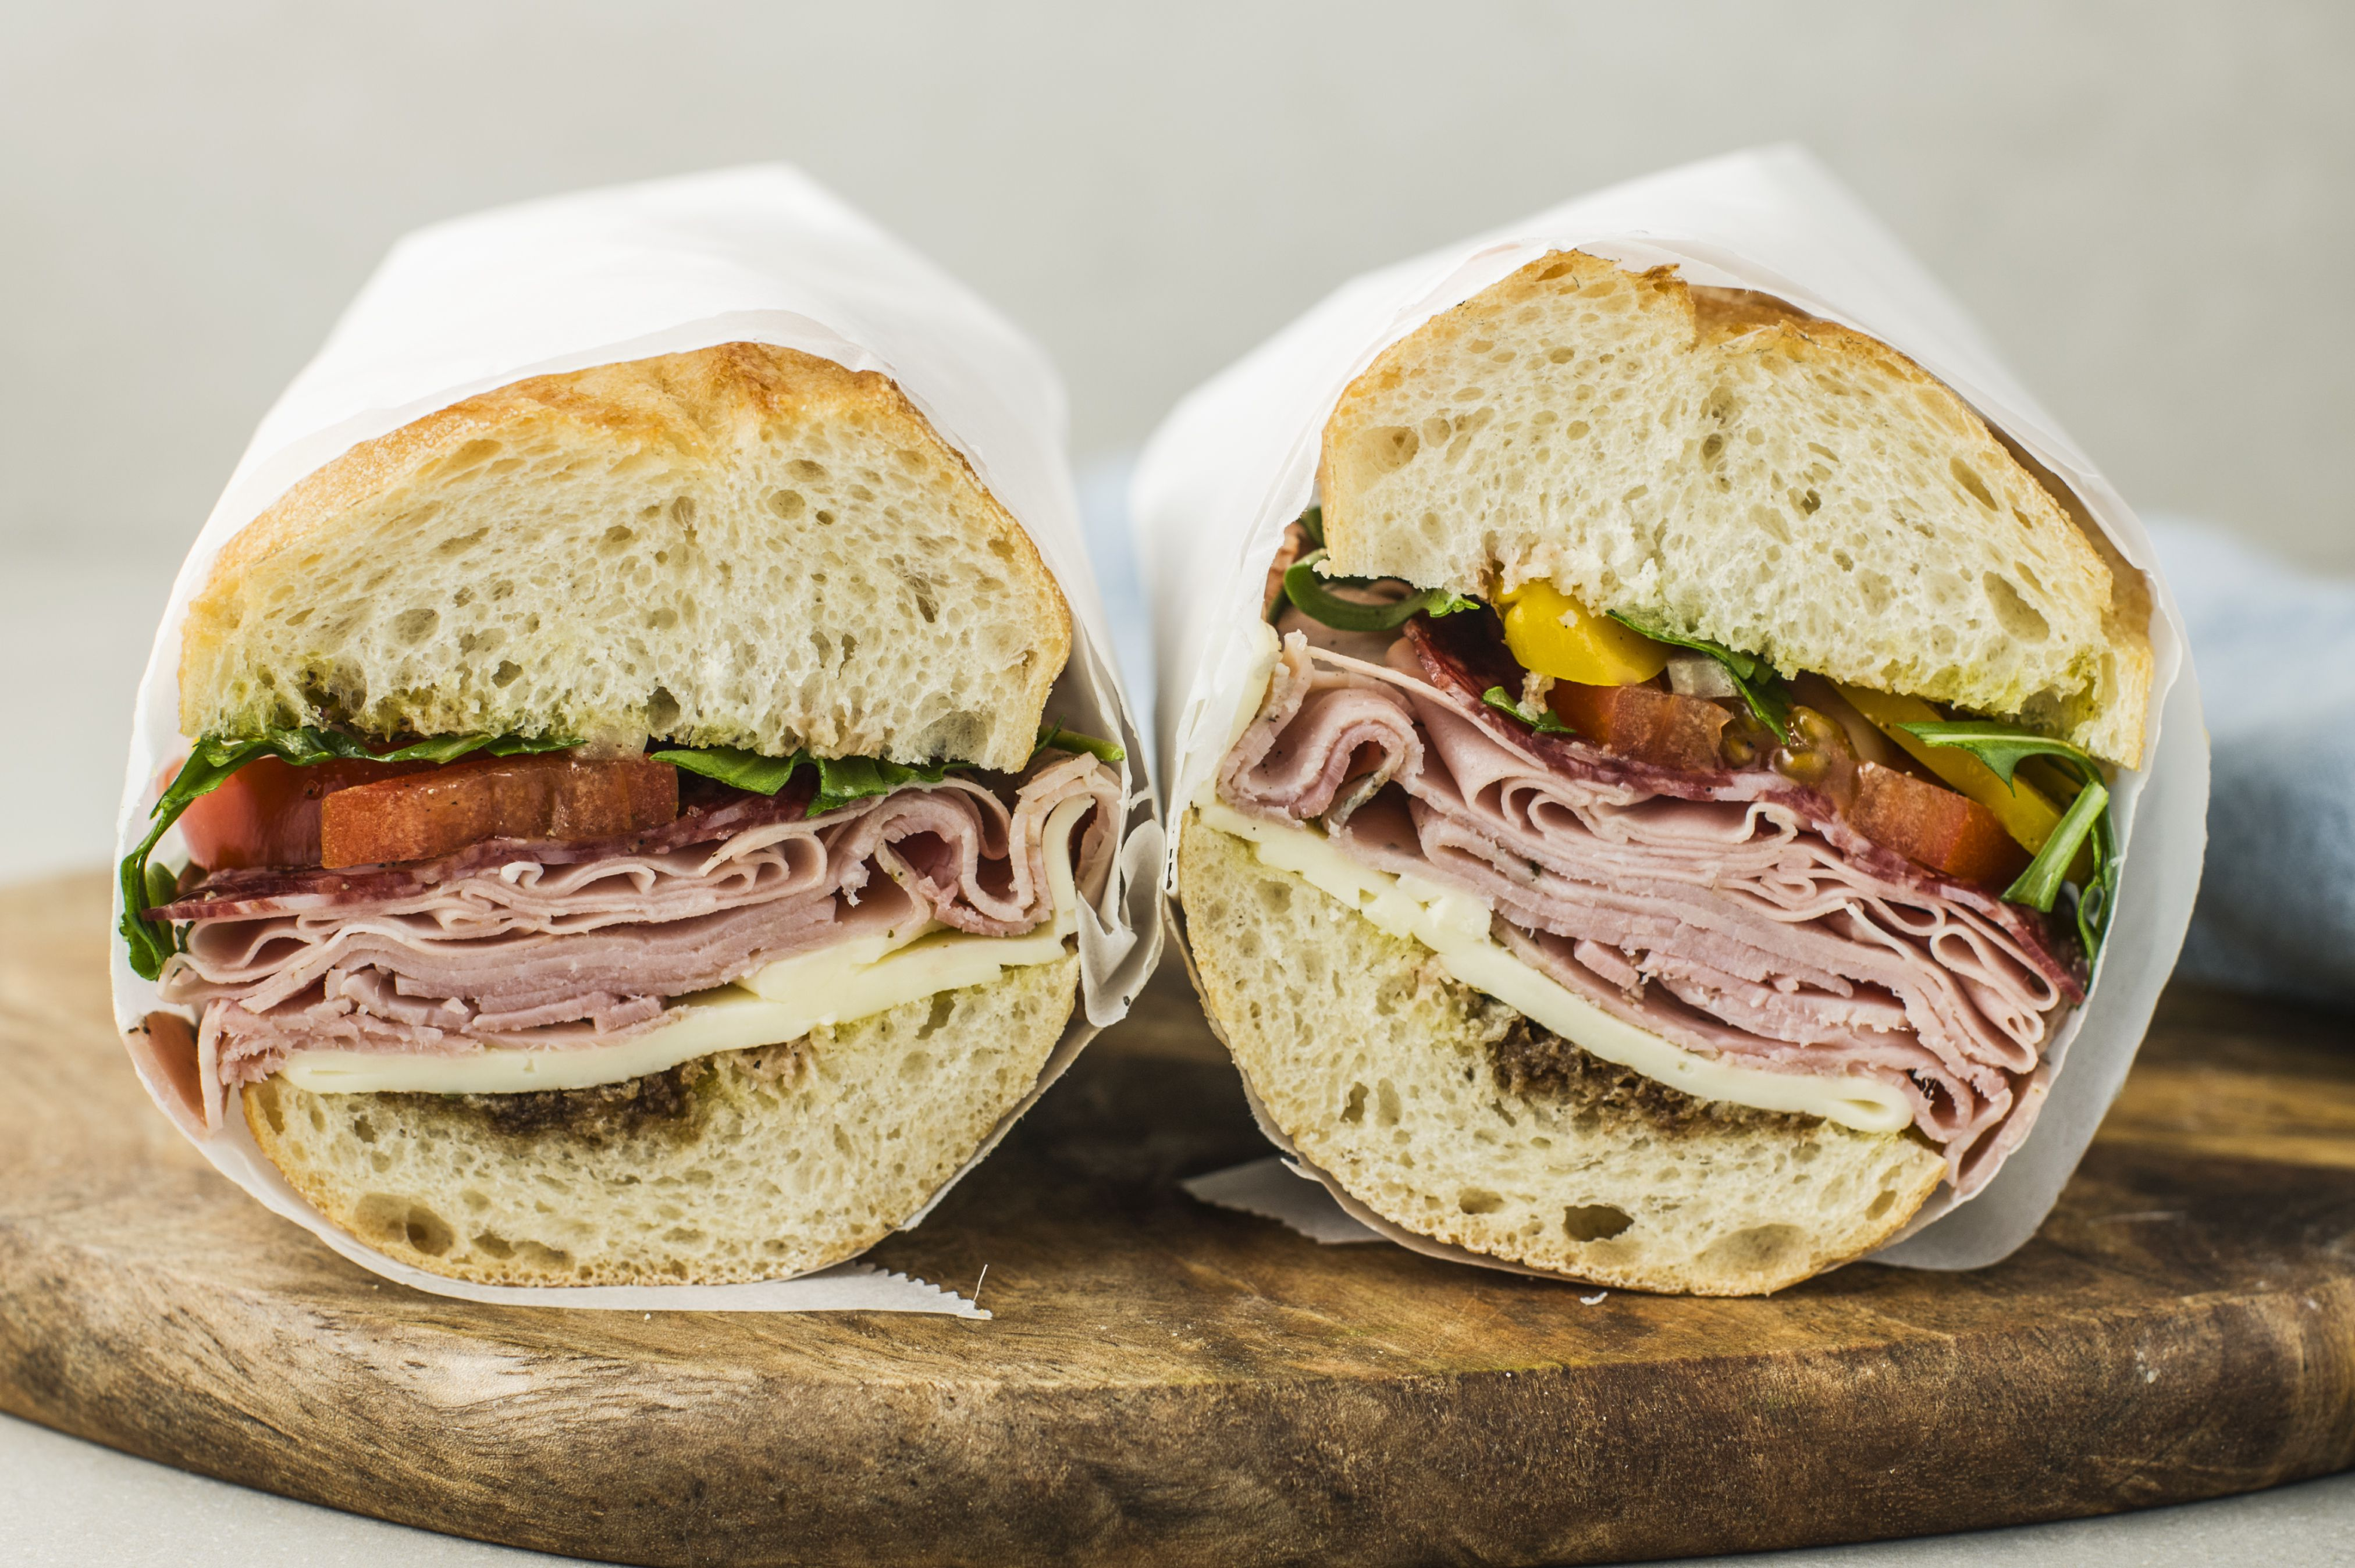 Wrap the sandwich in butcher paper and cut